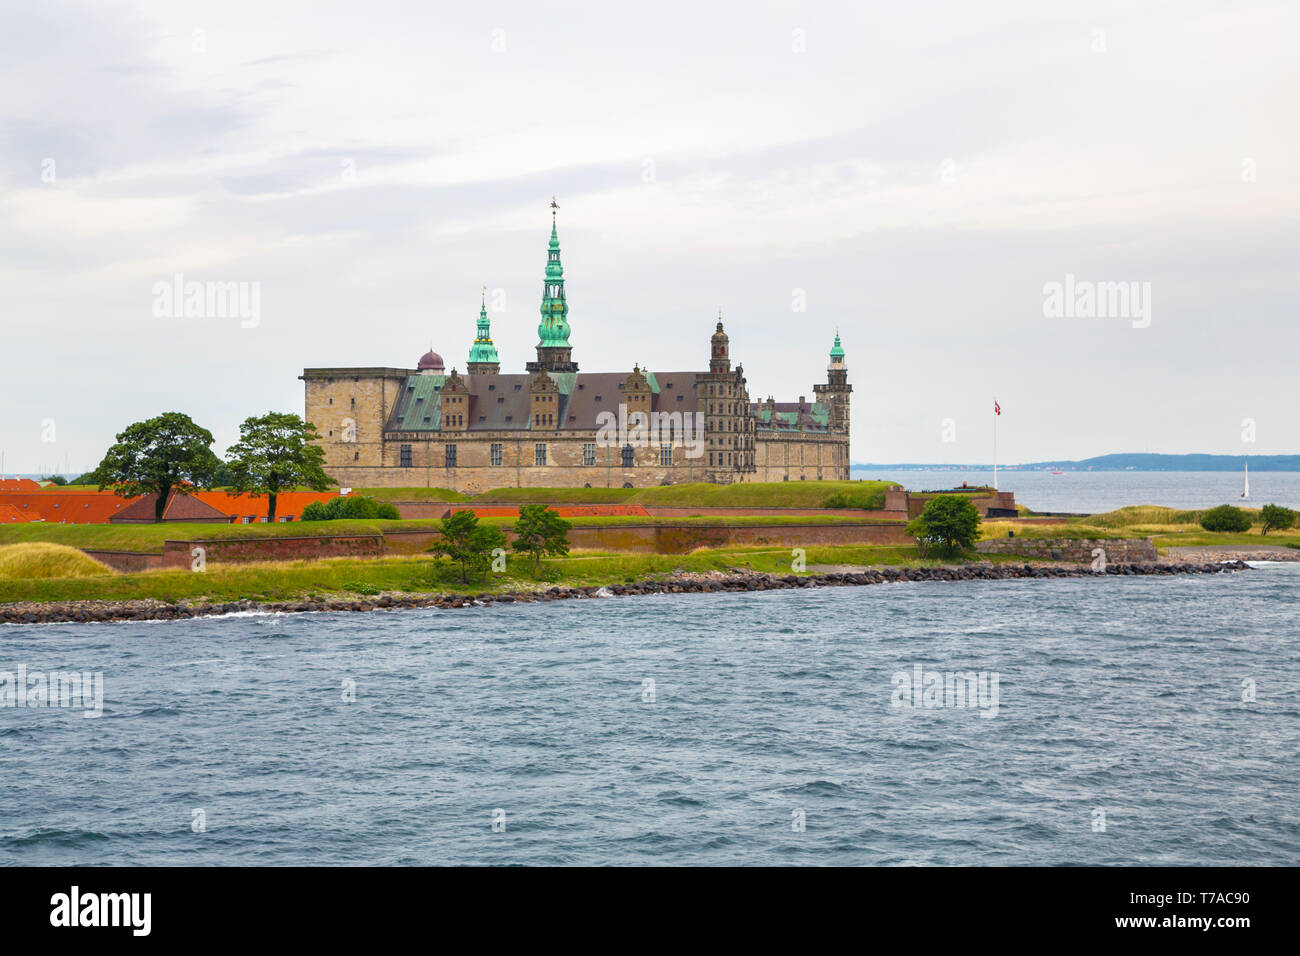 Kronborg Castle on the shore in Helsingor - Stock Image